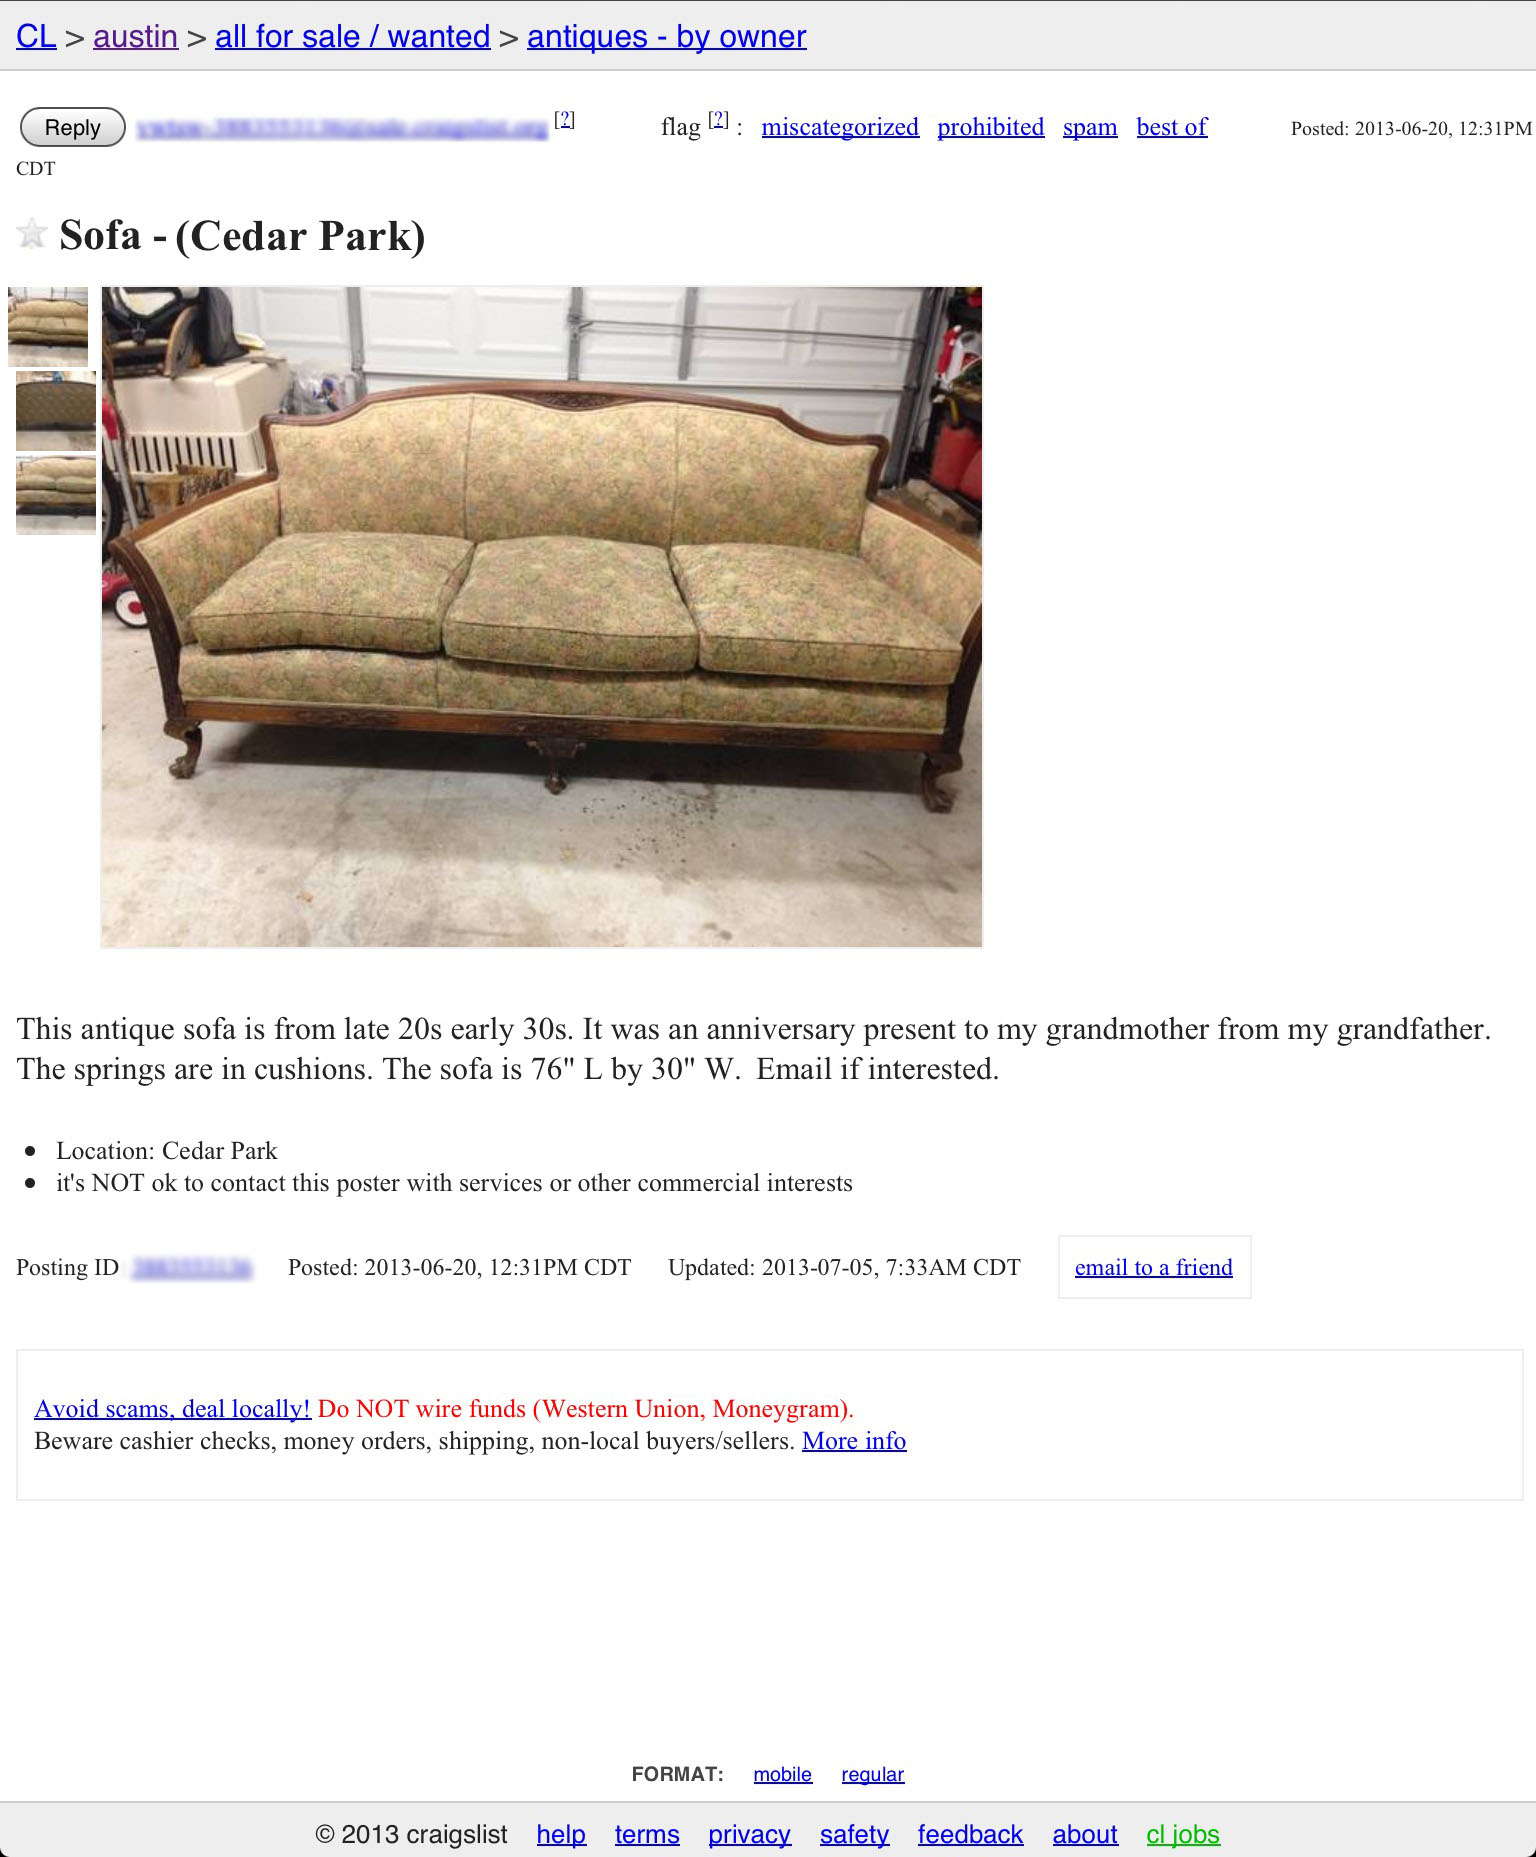 Re upholstering an antique sofa the DIY way – Remodelicious